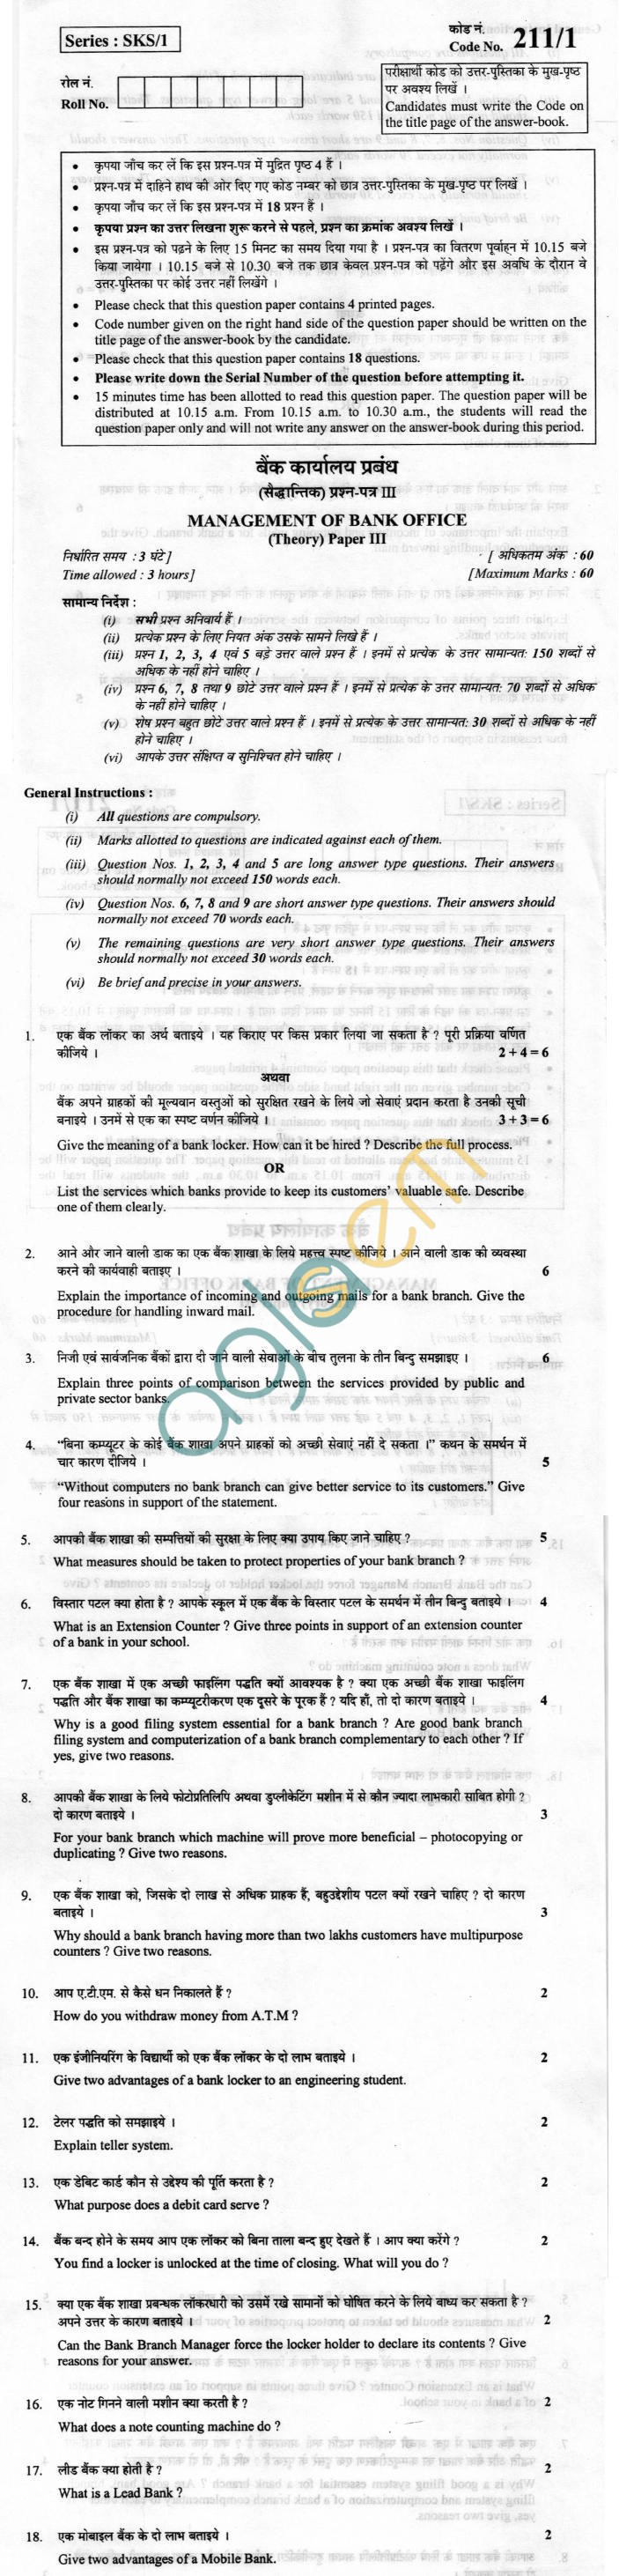 CBSE Board Exam 2013 Class XII Question Paper - Management of Bank Office Paper III